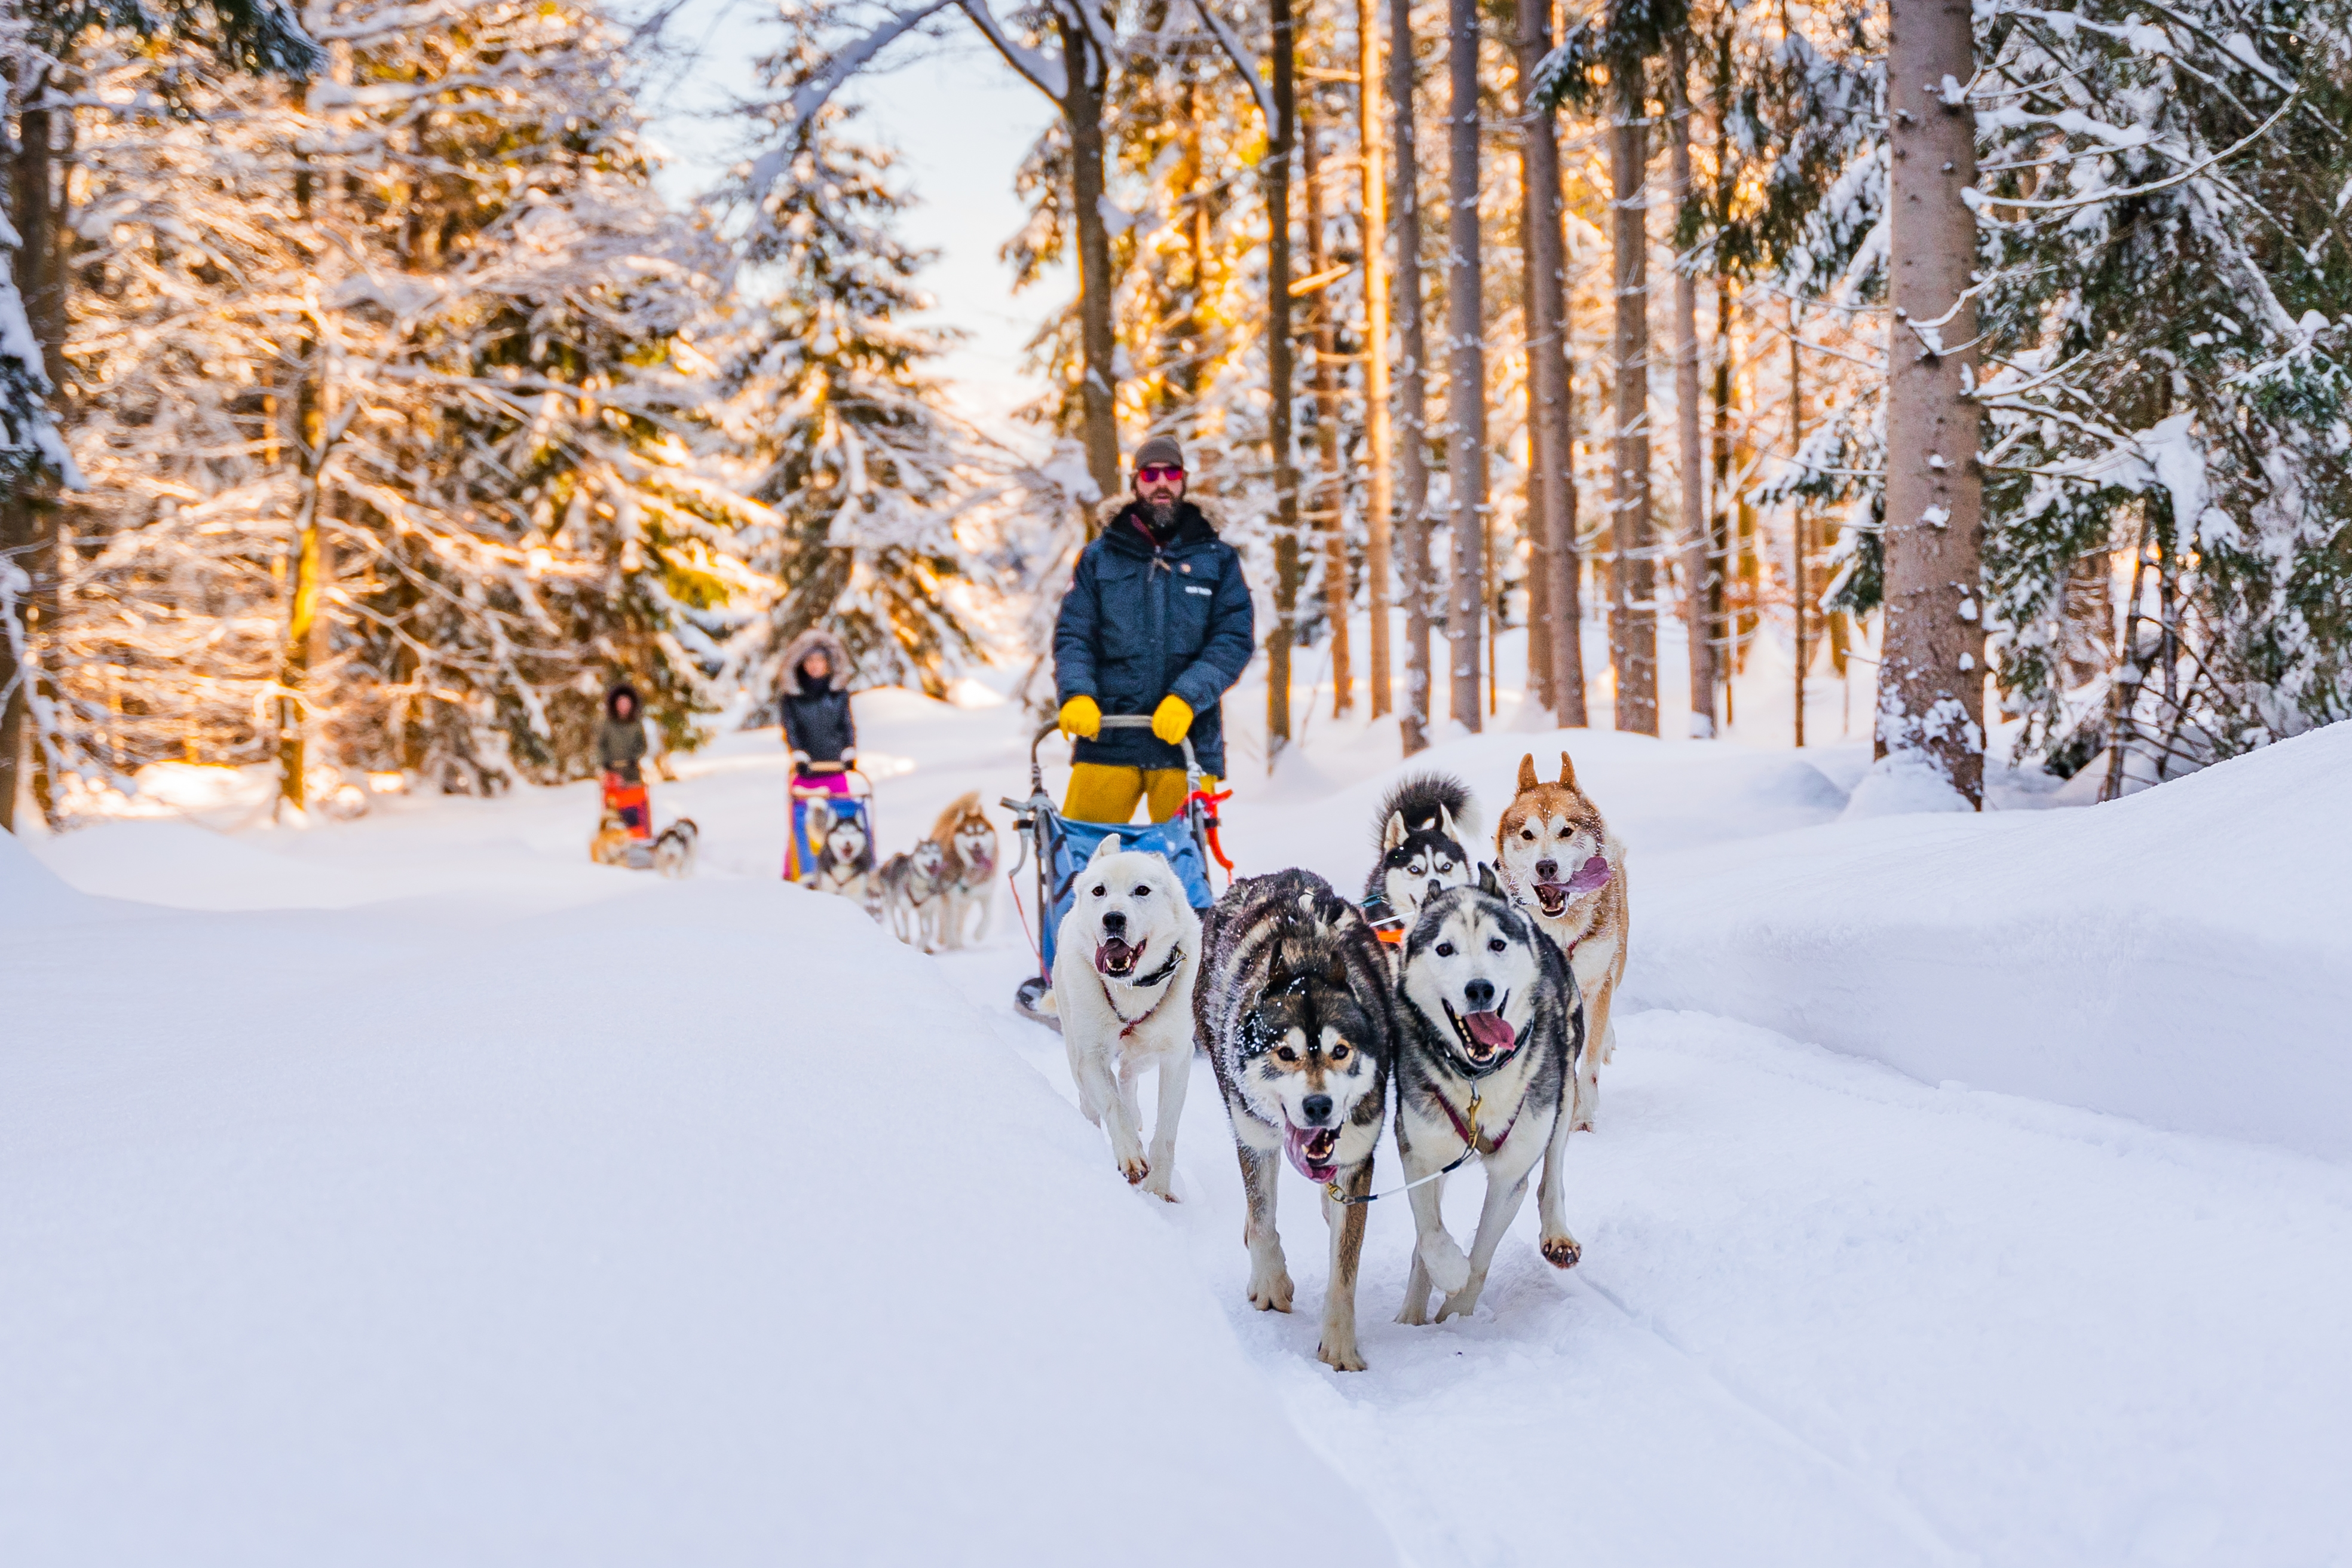 Unique Animal Experiences You Must Try in Austria